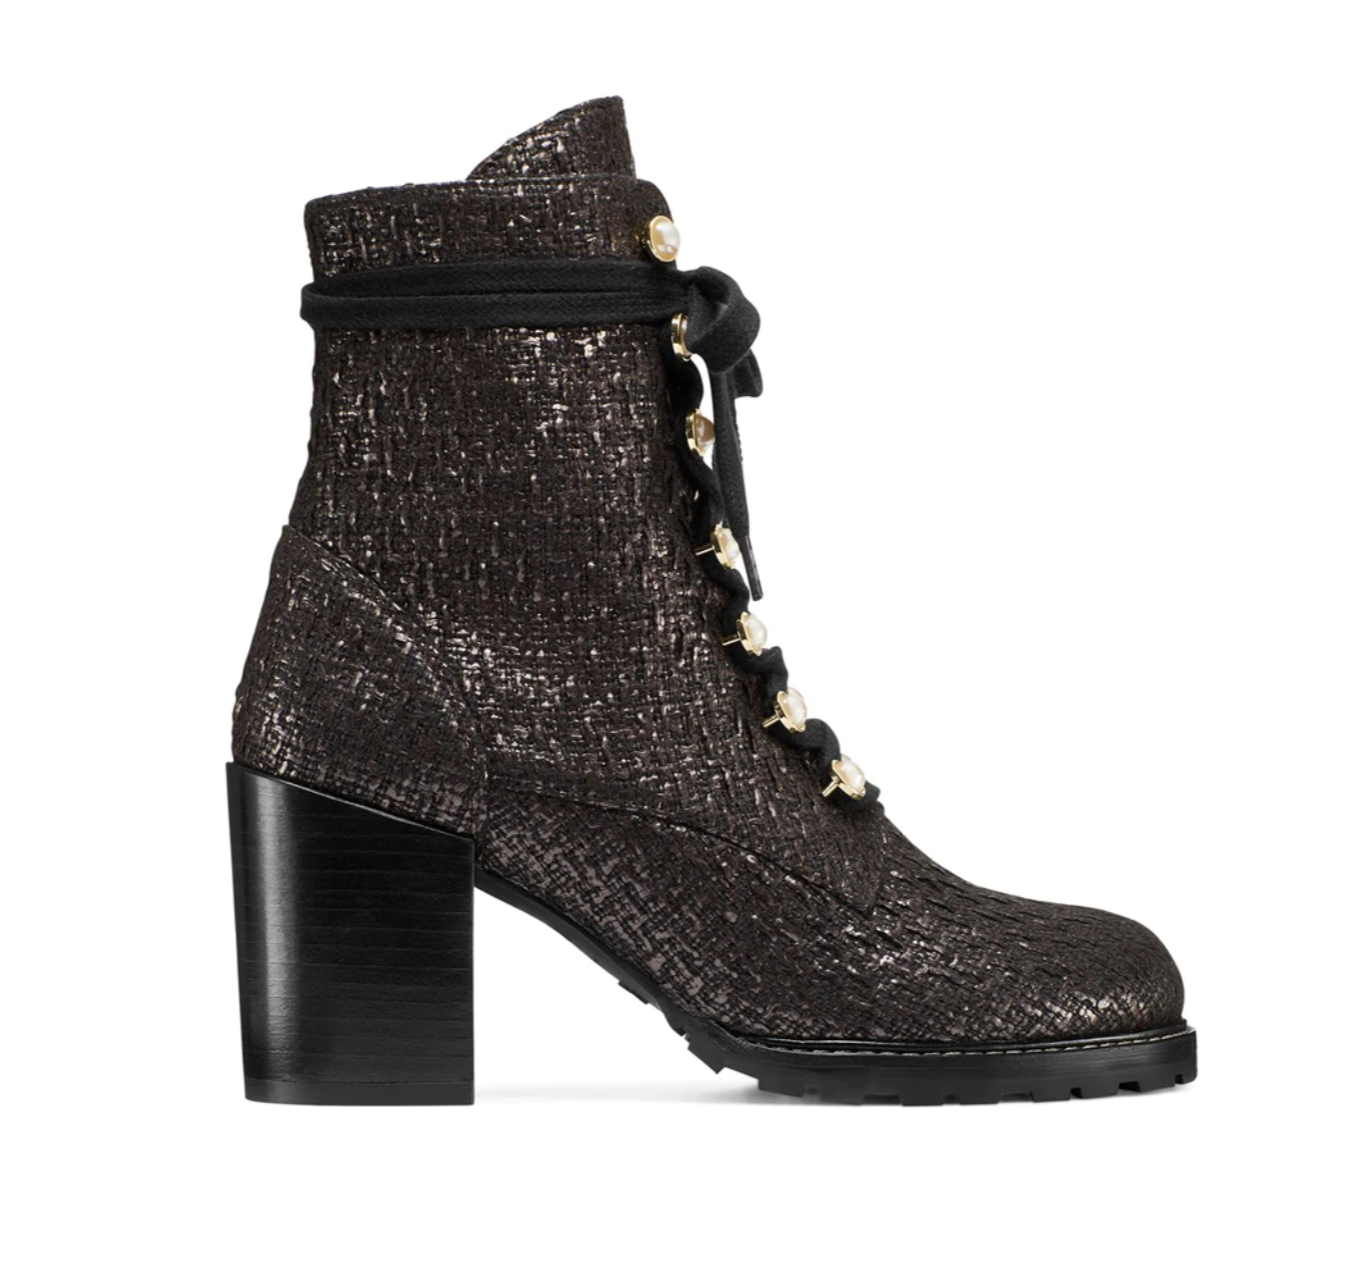 Stuart Weitzman: Up to 40% off selected styles